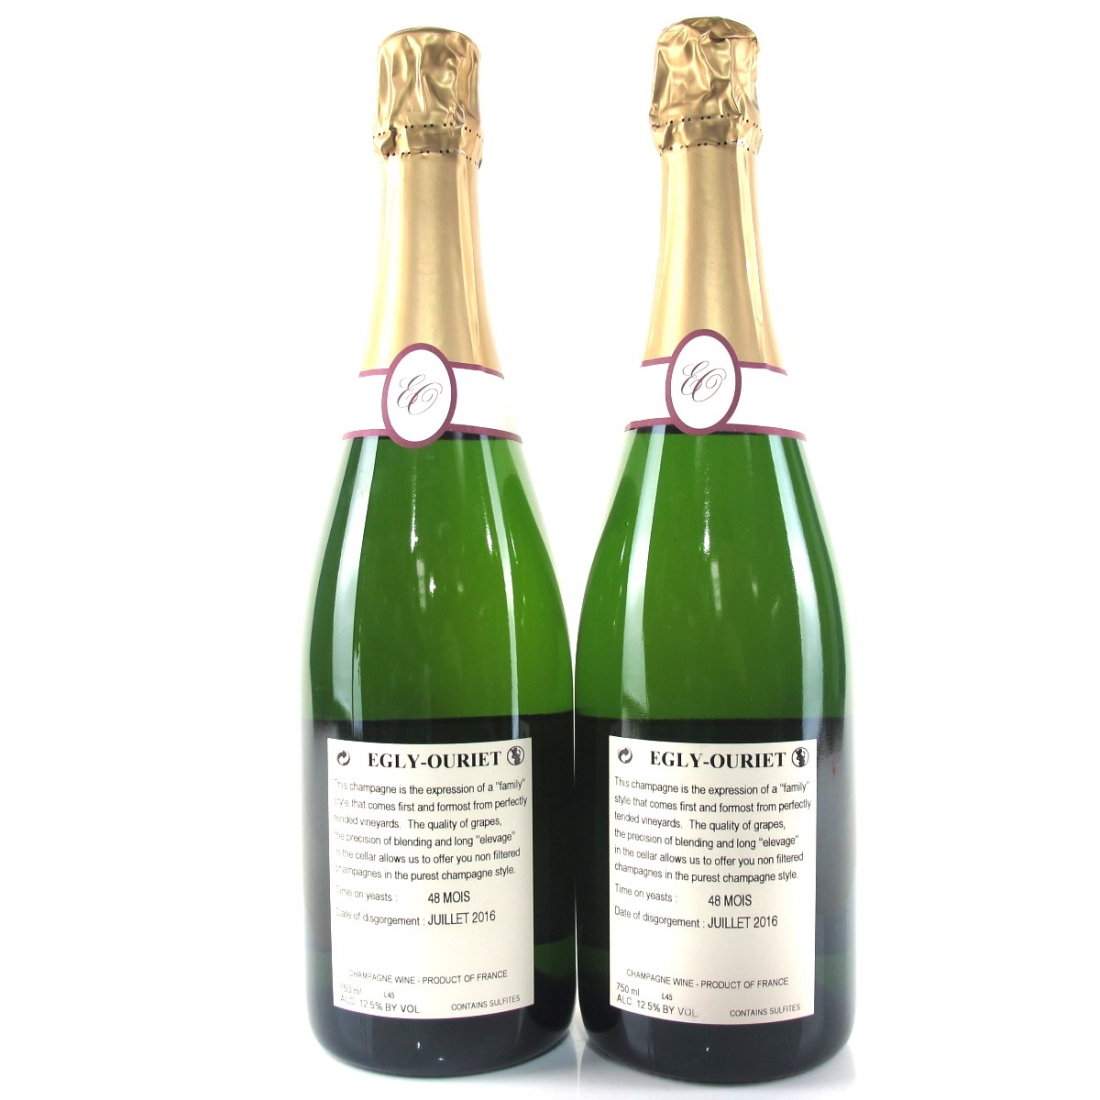 Egly-Ouriet Brut Tradition Grand Cru NV Champagne 2x75cl